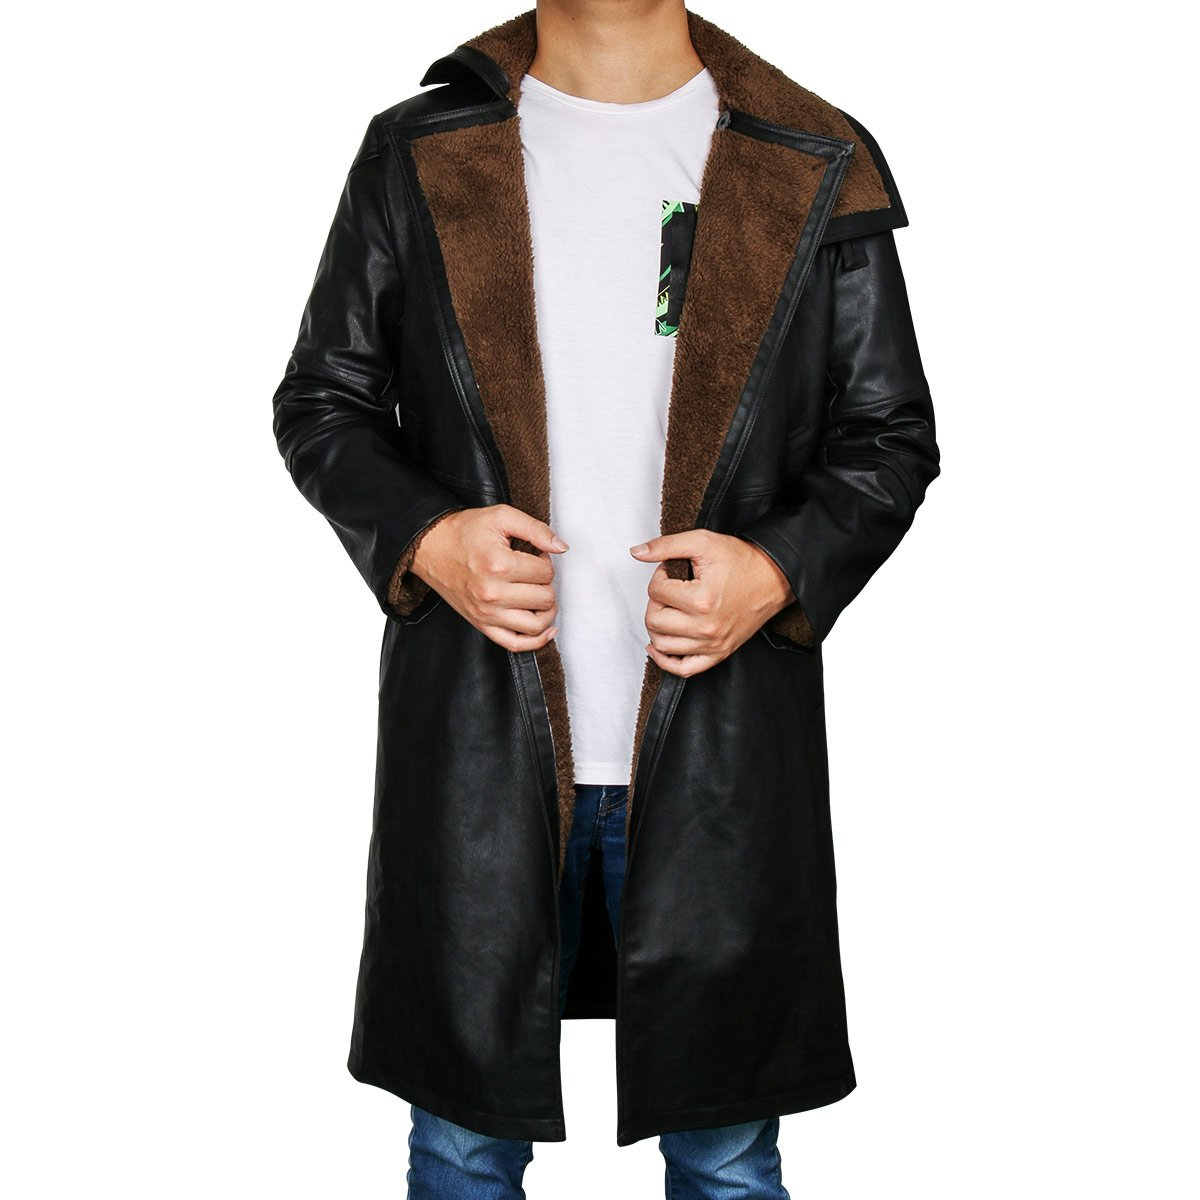 LiuzilaiST Runner 2049 Ryan Gosling Officer K Cosplay Costume Blade Shearling Black Trench Leather Coat Jacket (Large)